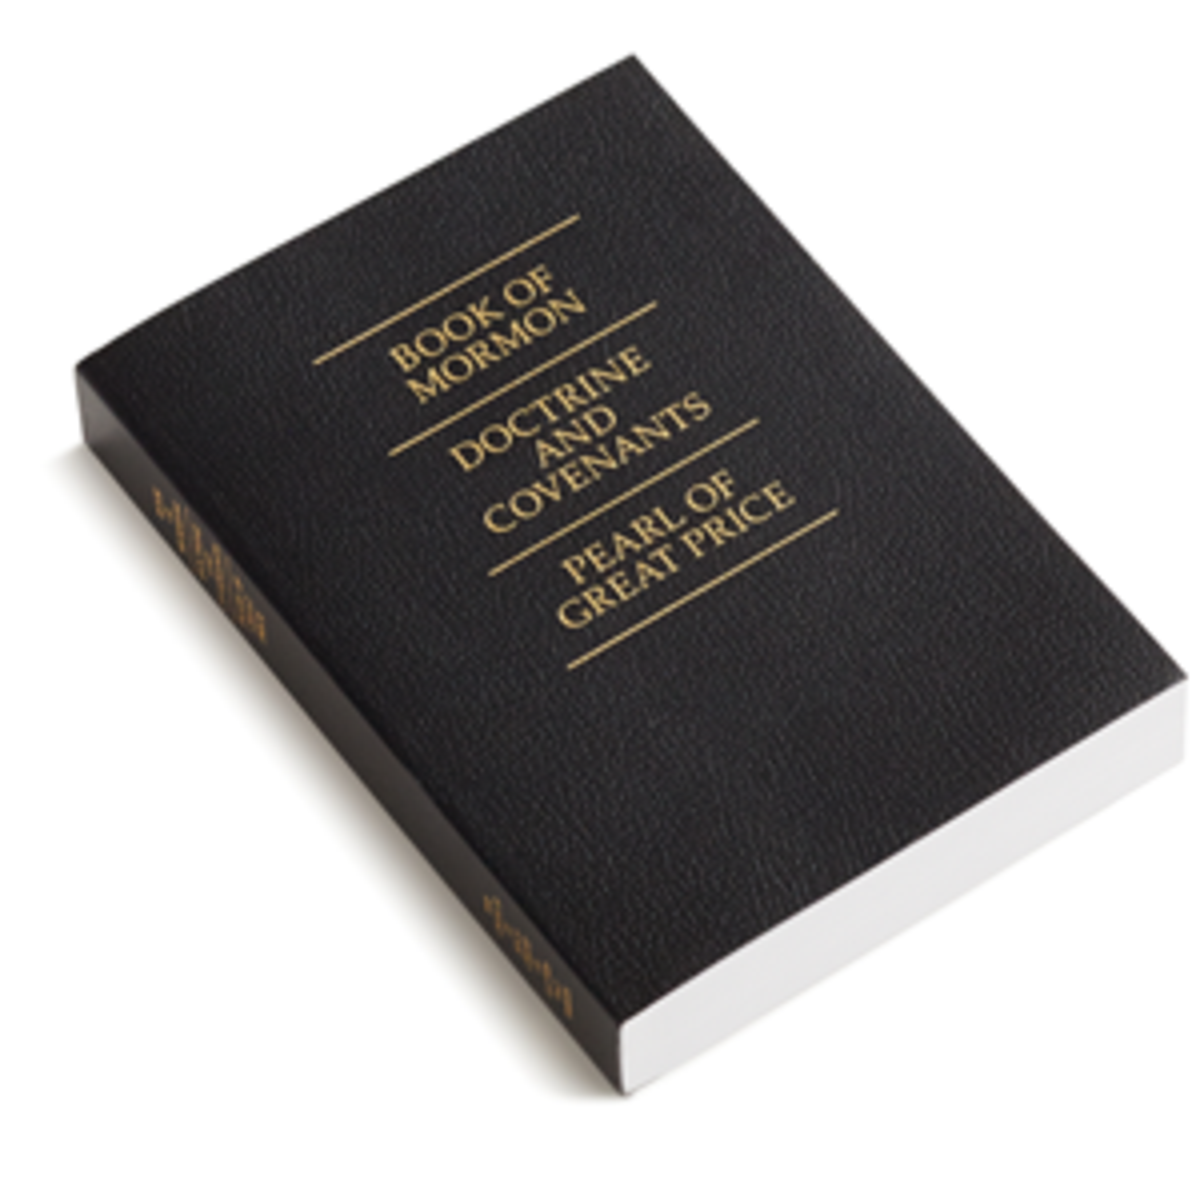 Book of Mormon, Pearl of Great Price and Doctrine and Covenants